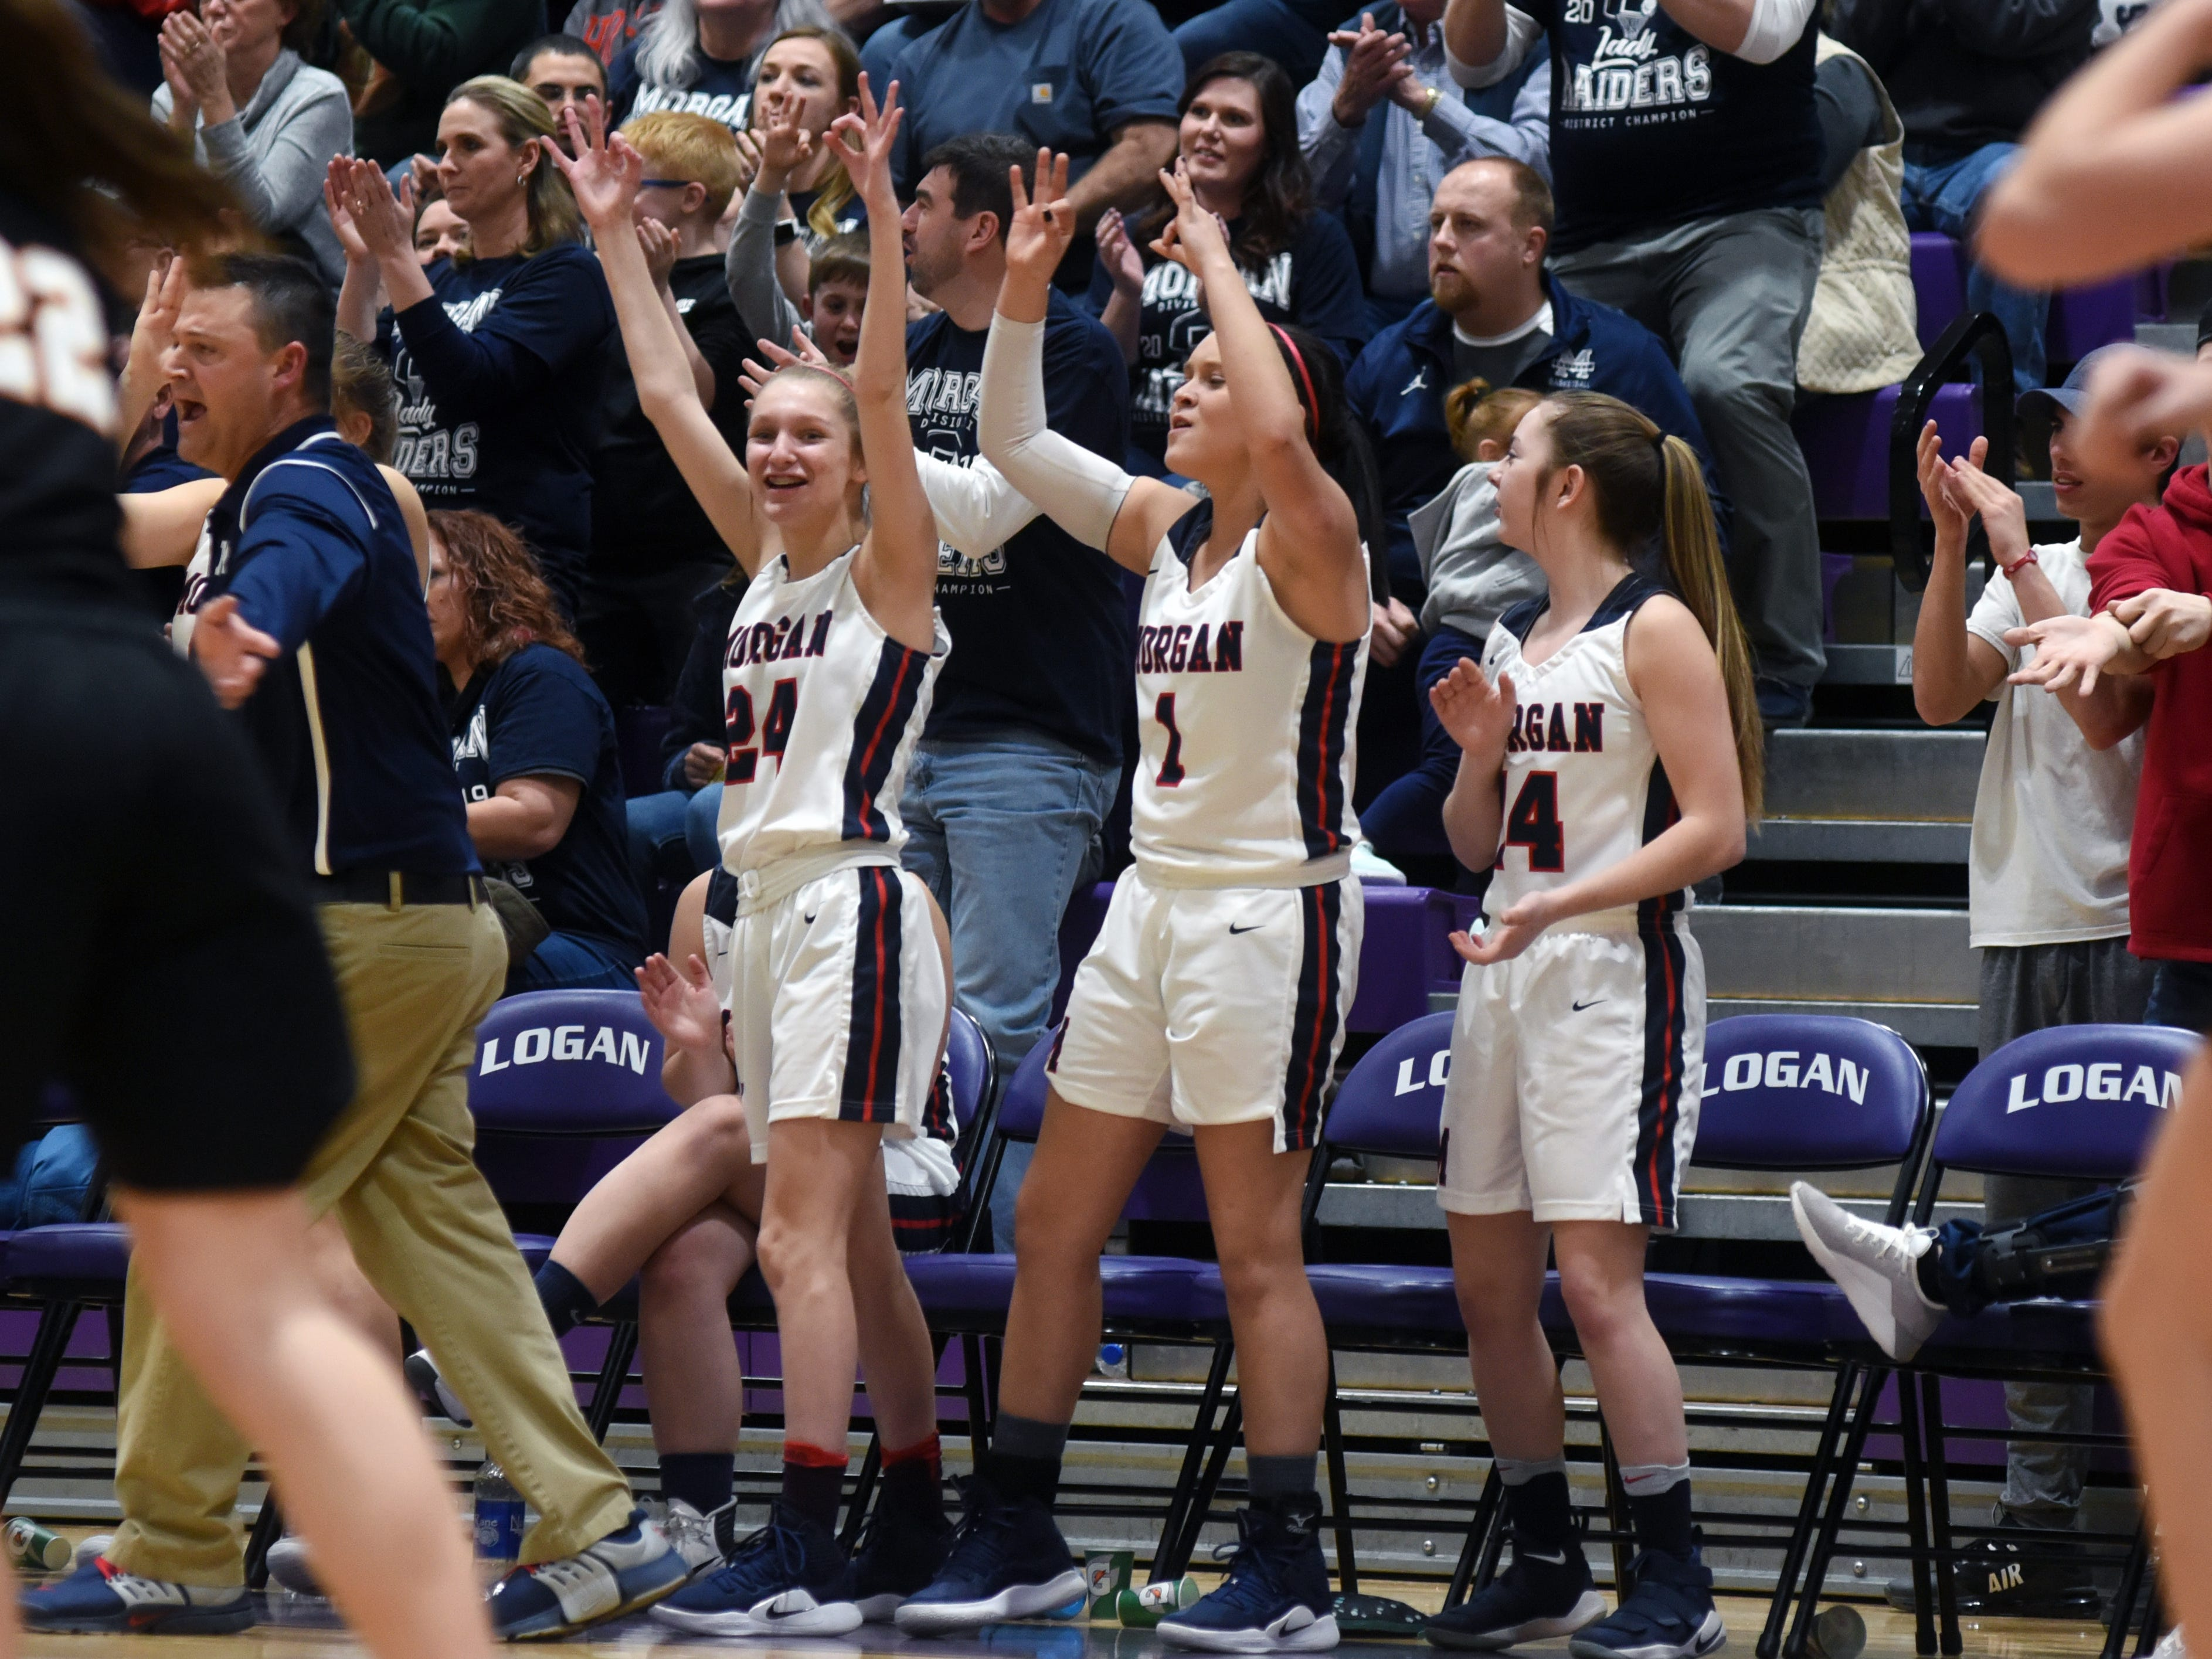 Players on the bench celebrate a 3-pointer during the second half of Morgan's 56-55 loss to Wheelersburg in a Division III regional semifinal at Logan.